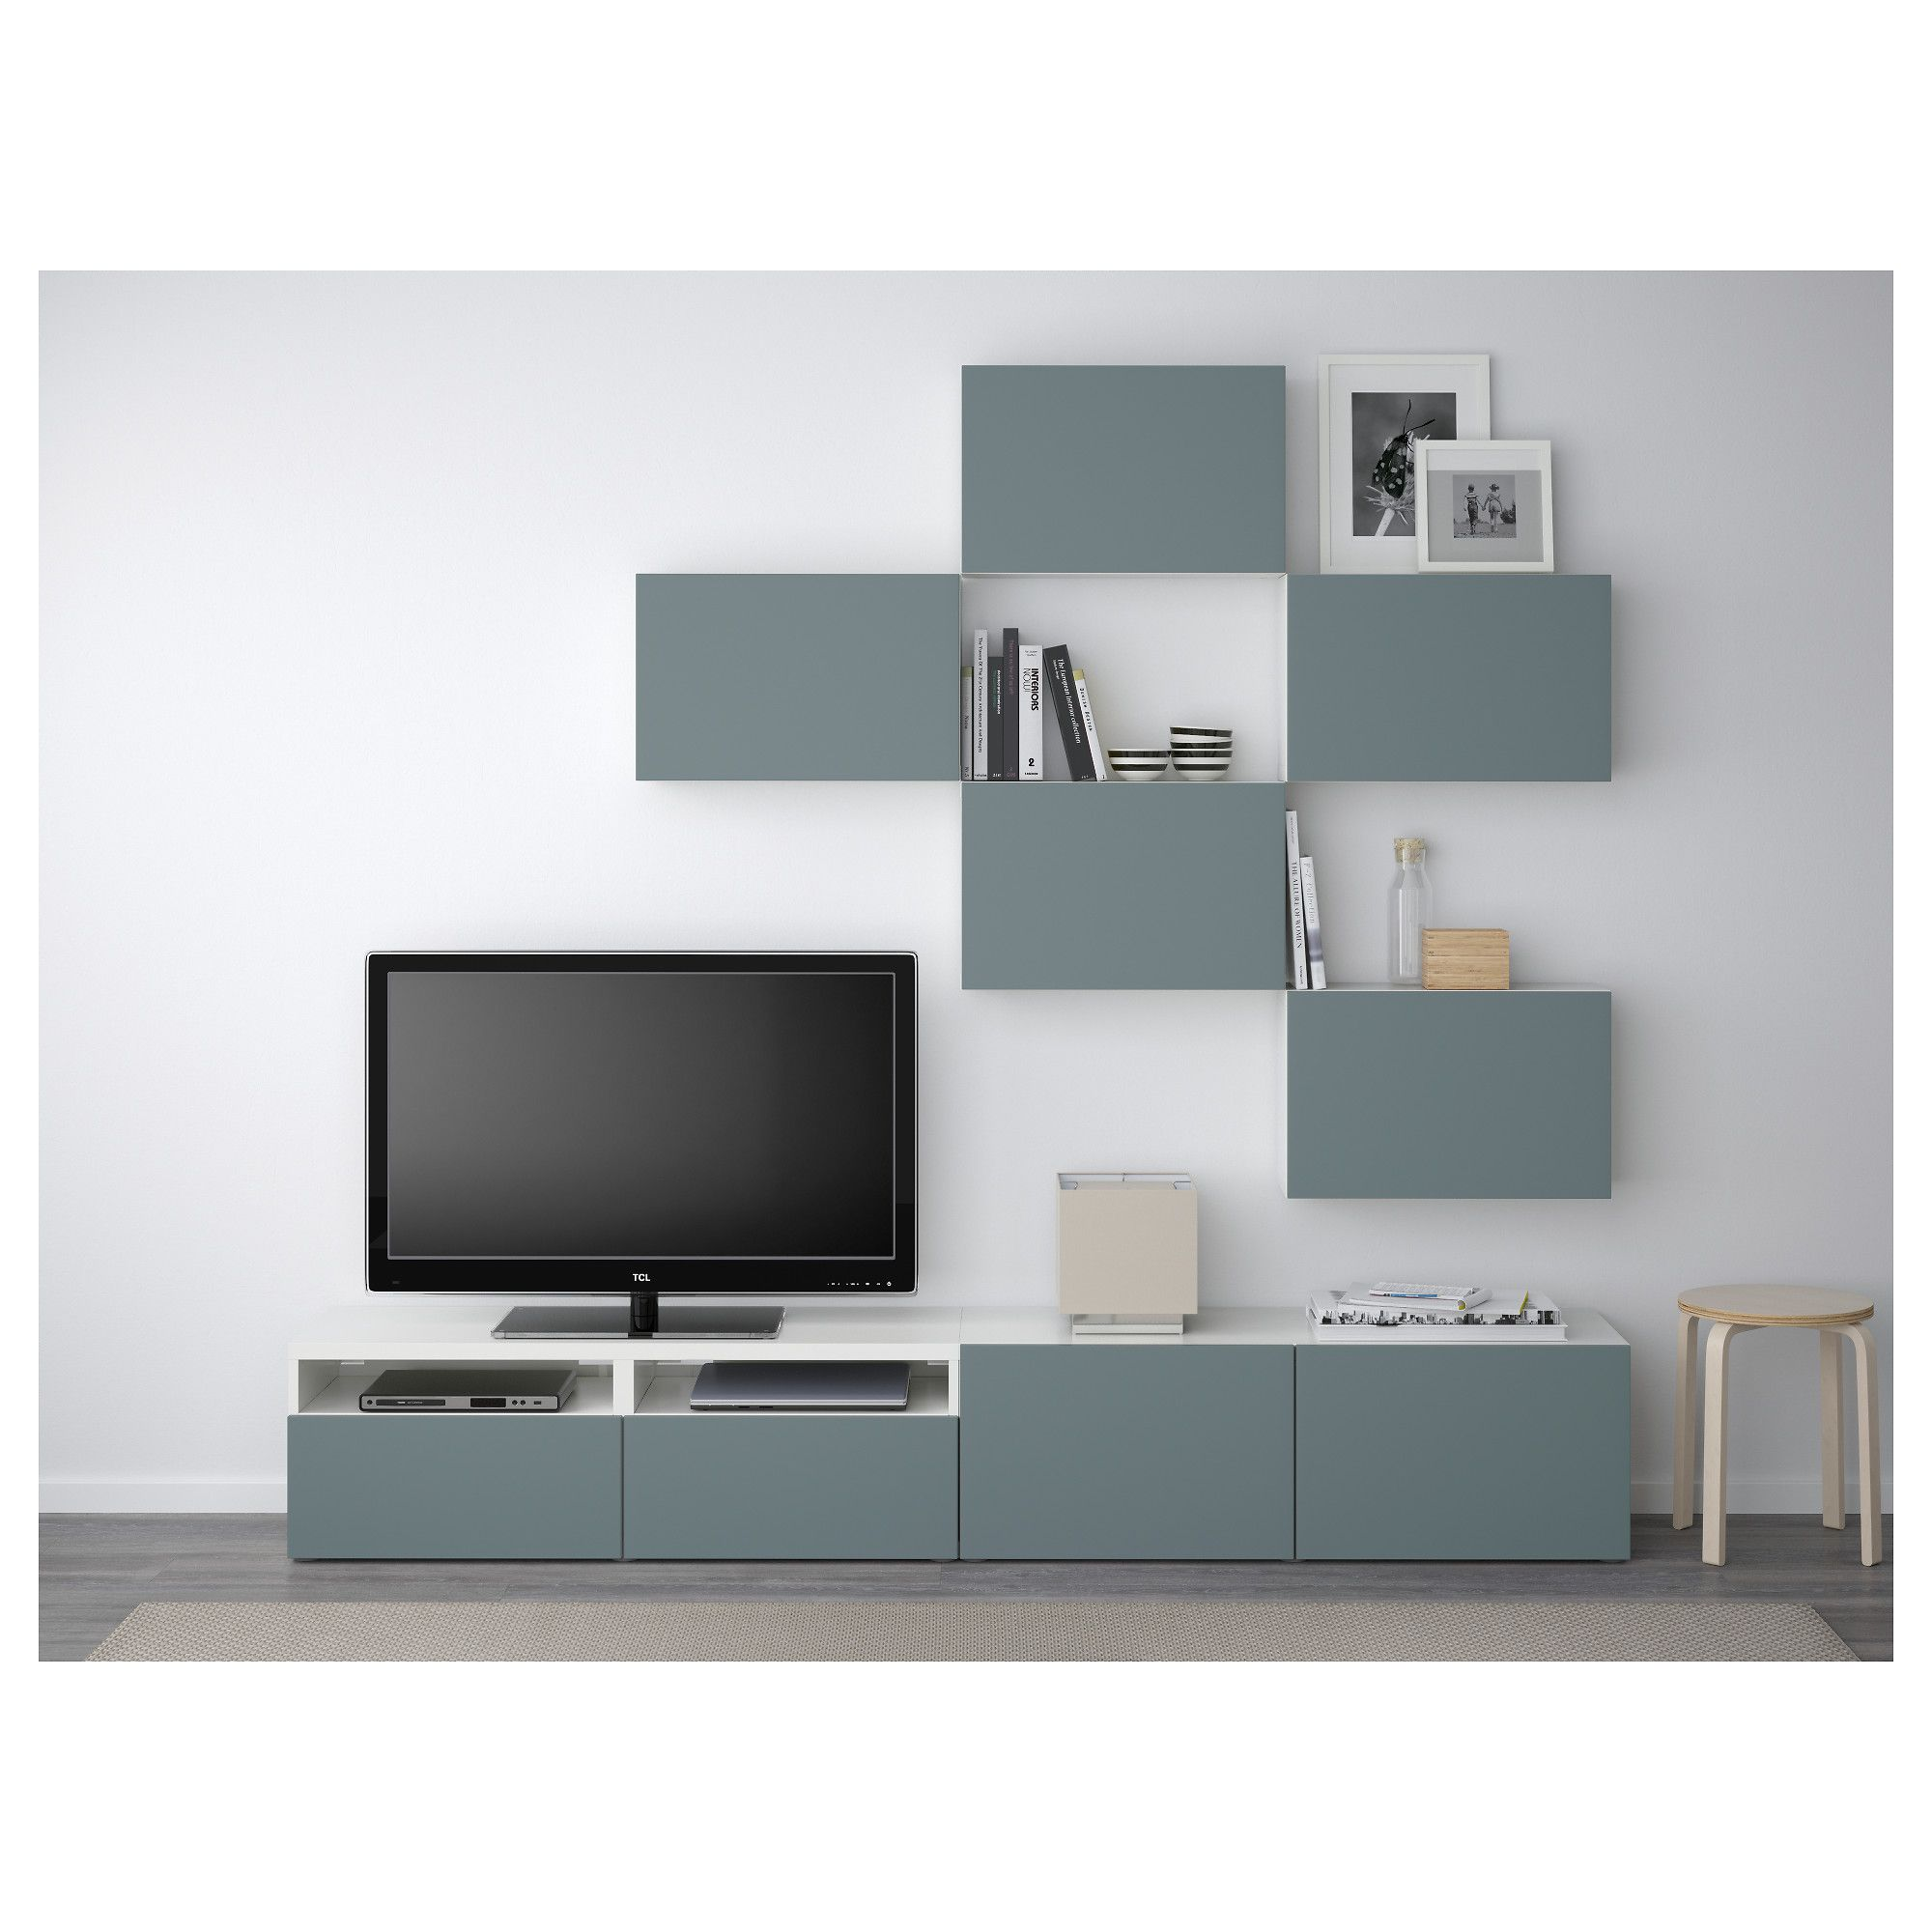 Furniture And Home Furnishings With Images Floating Shelves